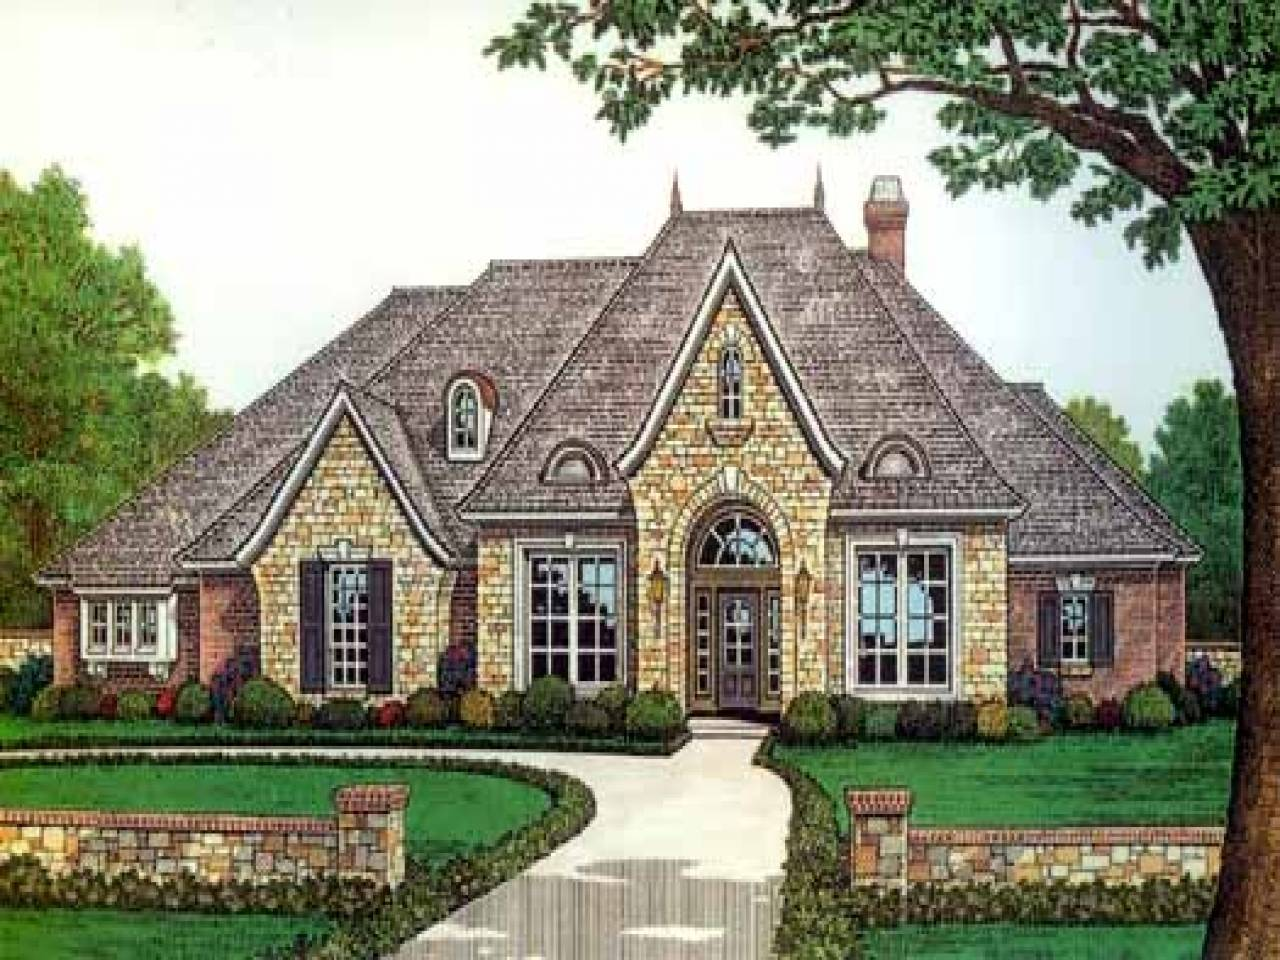 Uncategorized Archives - Page 268 of 896 - House Plans